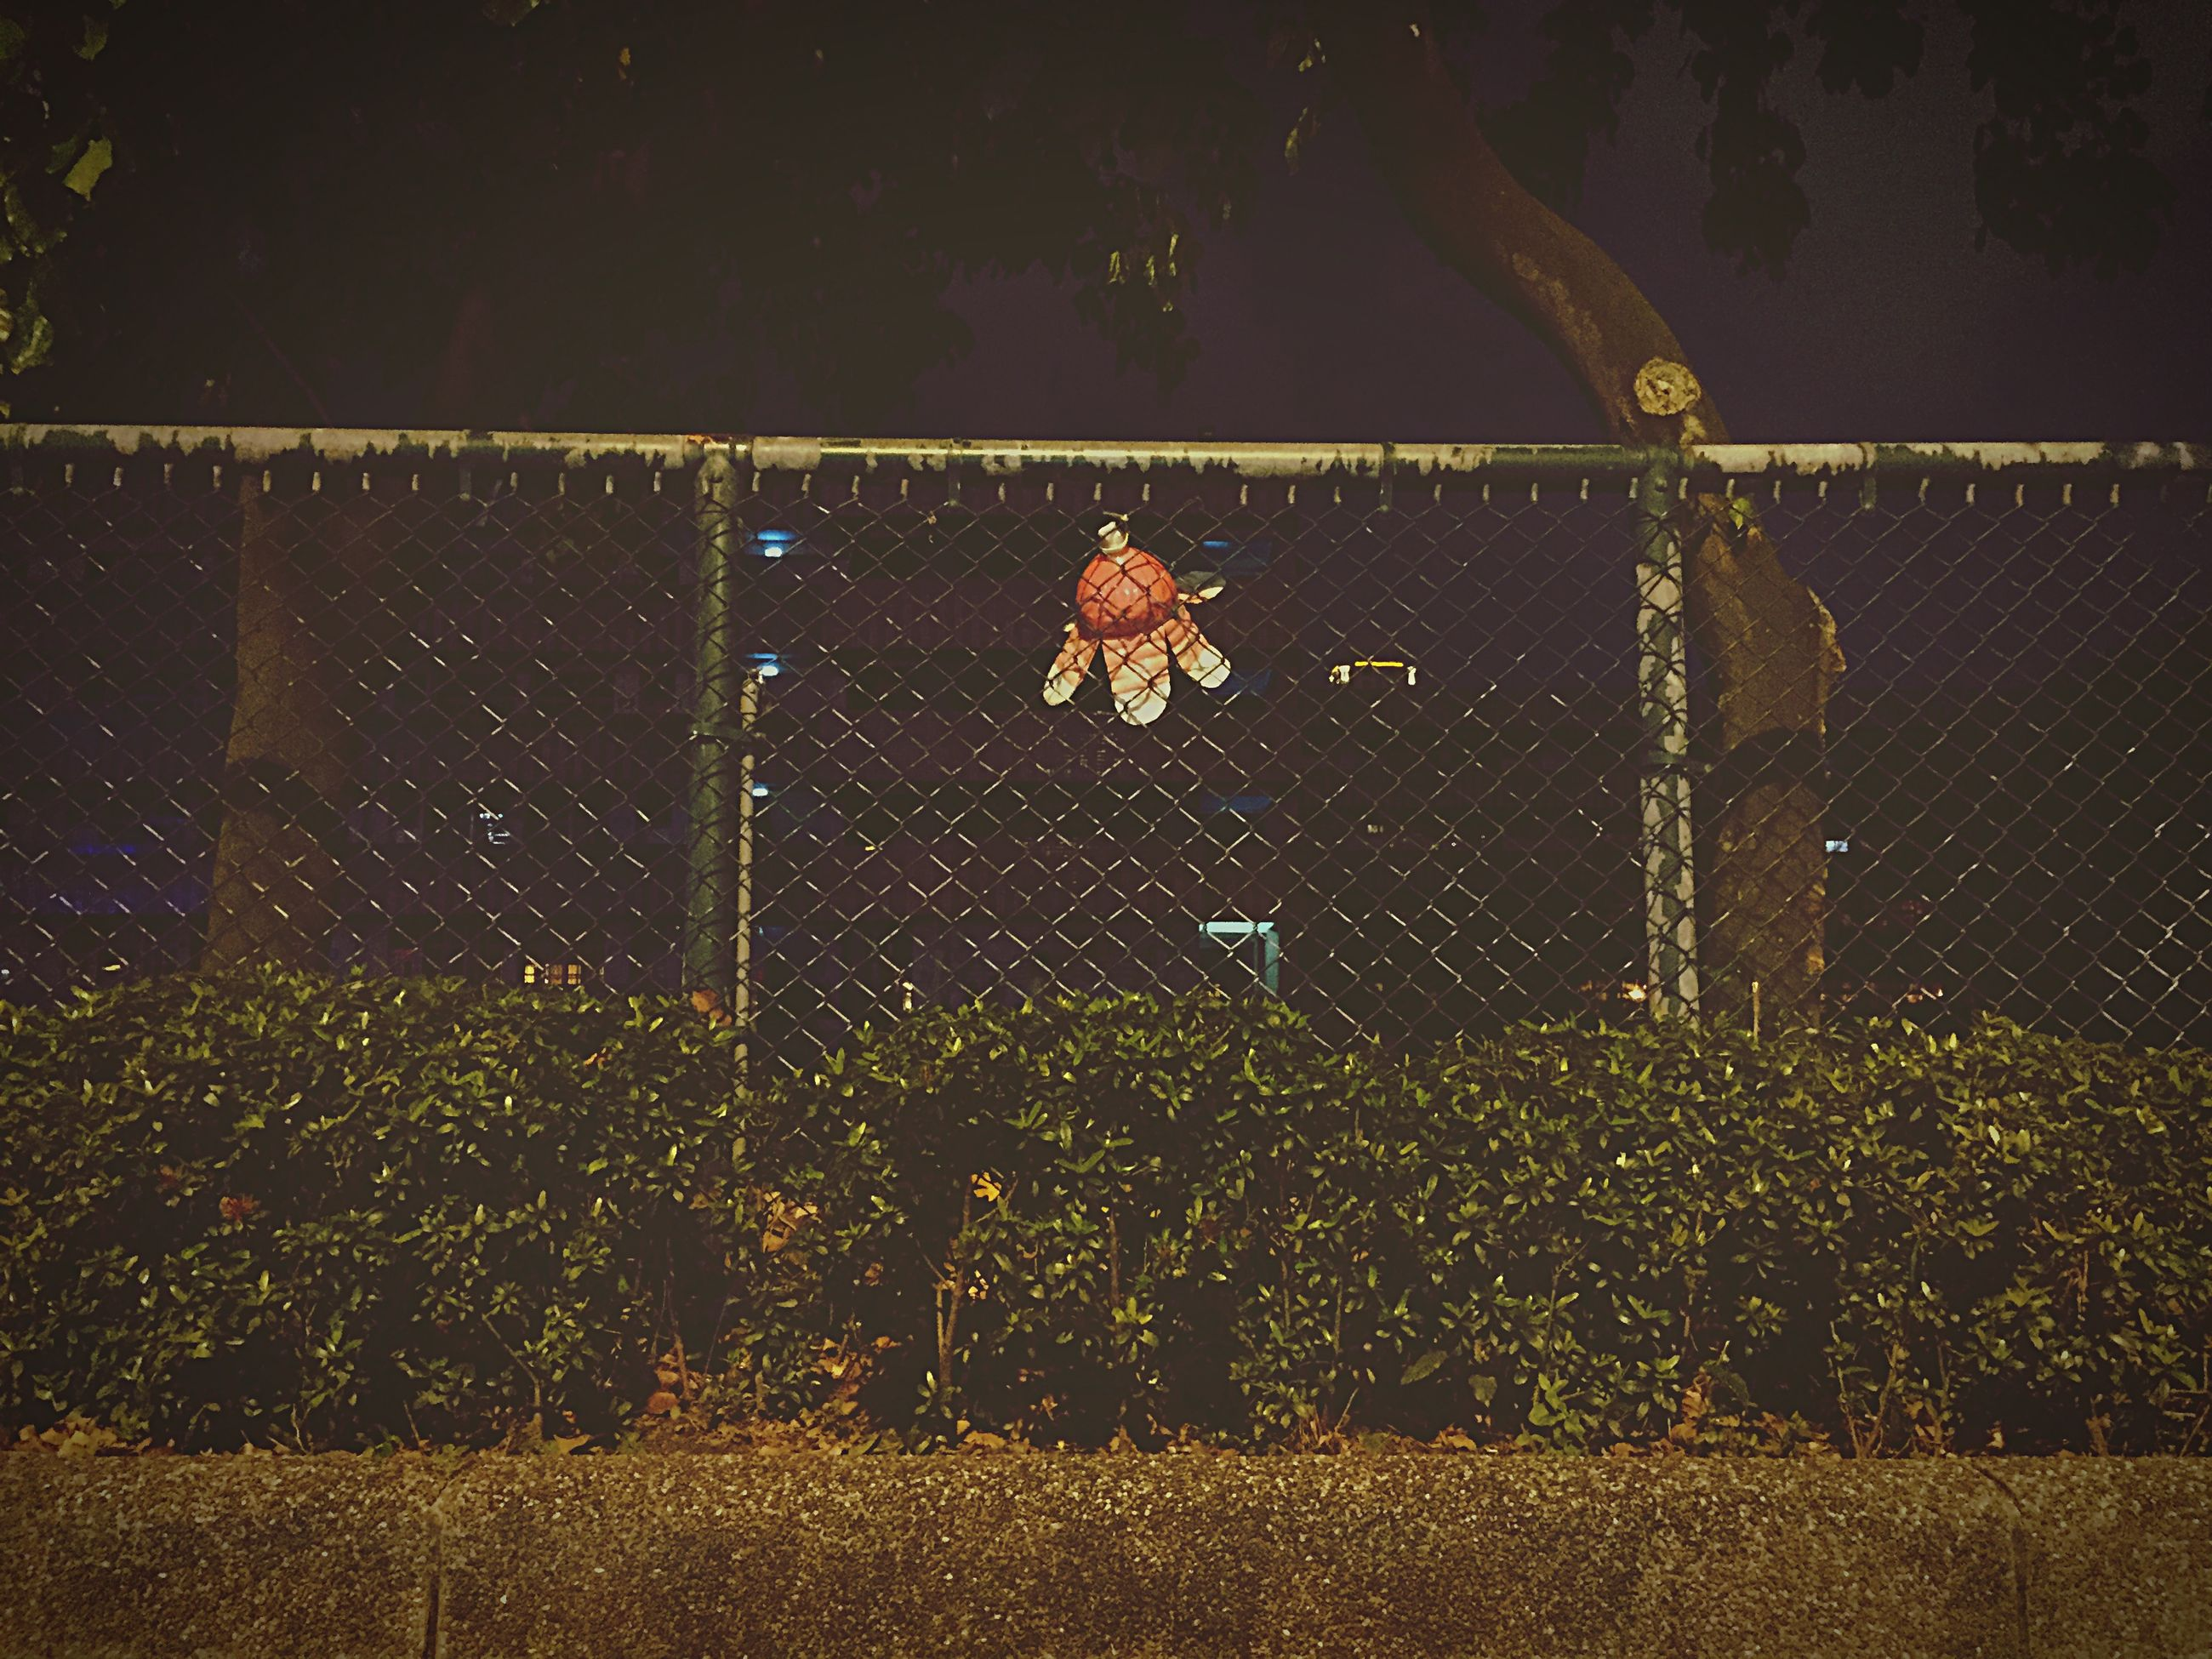 animal themes, night, fence, plant, nature, outdoors, one animal, protection, leaf, no people, dry, spider web, safety, chainlink fence, wall - building feature, field, autumn, growth, metal